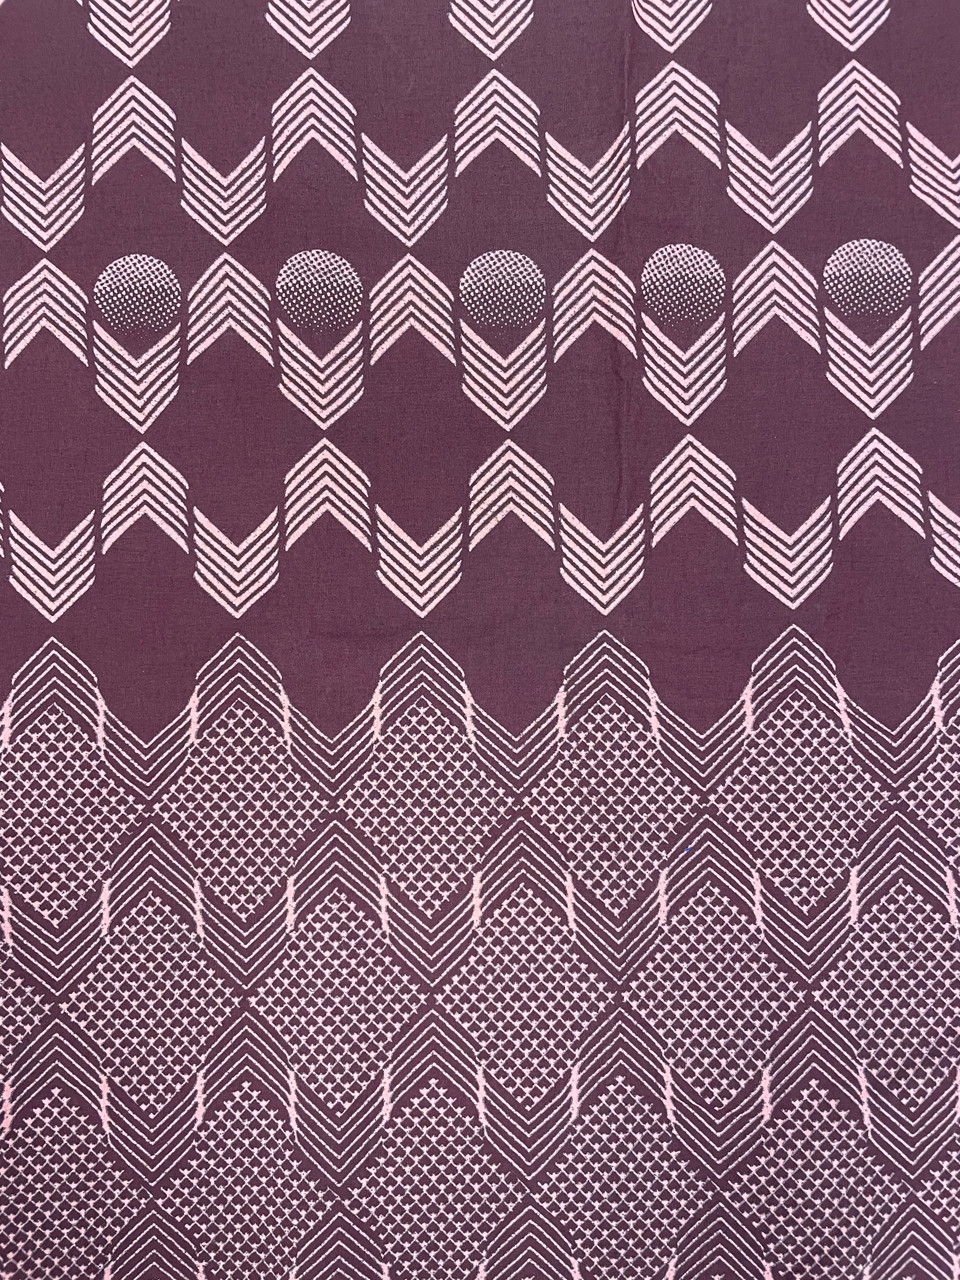 African Traditional Wax Print 27062 Burgandy Border Print Cotton Fabric By The Yard